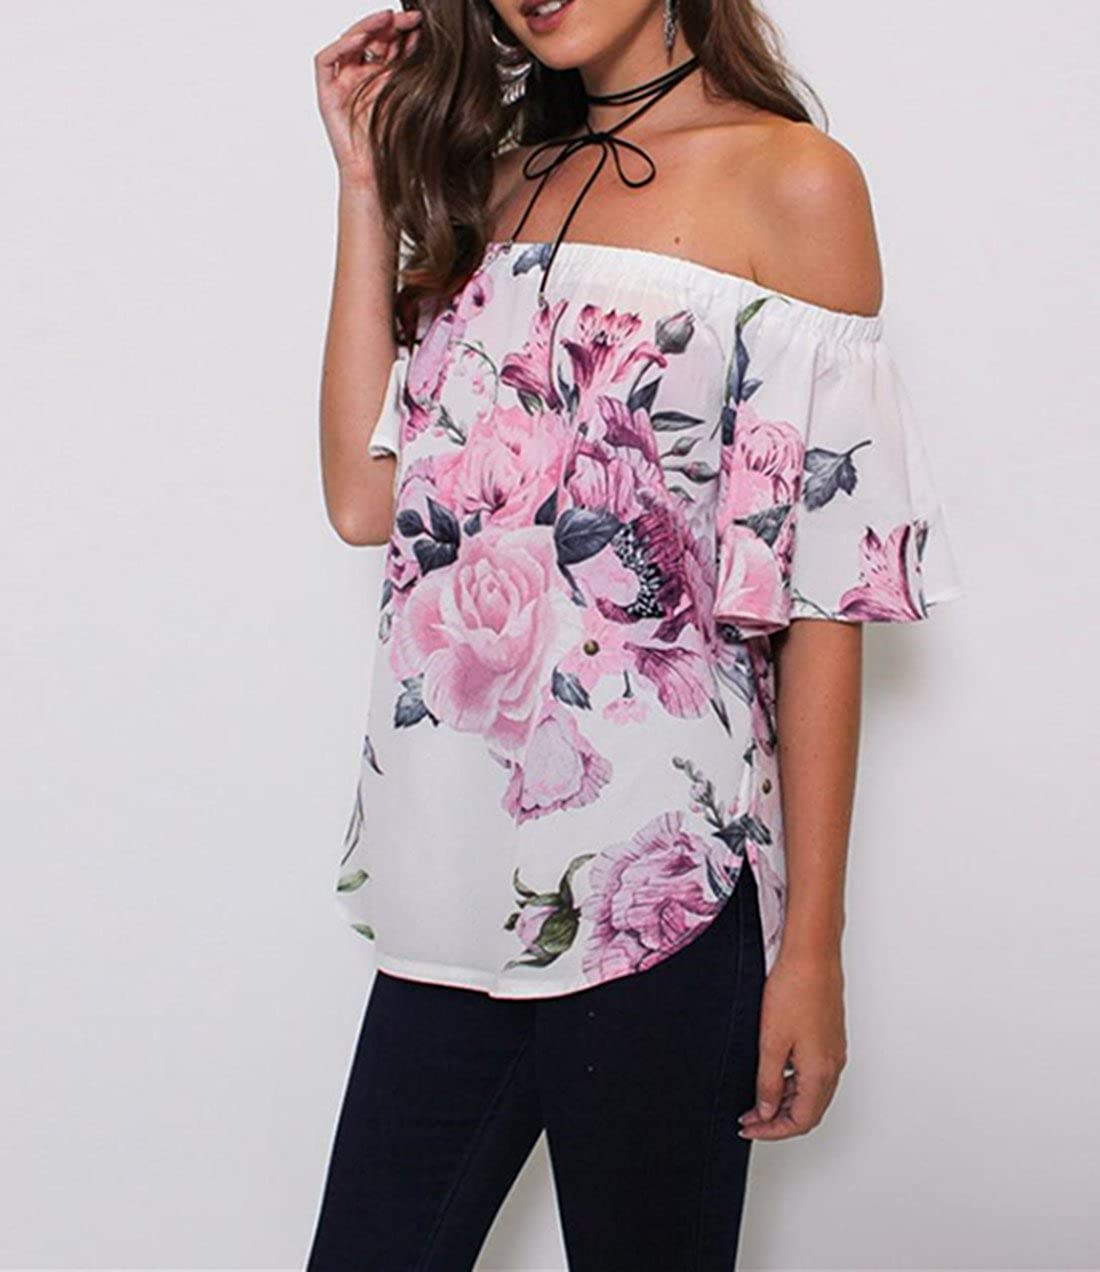 cc58883f1765a1 VEMOW 2018 Spring Summer Tops For Women Fashion Off Shoulder Slash Neck  Lovely Sexy Energetic Beach Party Floral Printed Blouse Casual Tops T Shir  Crop Cute ...